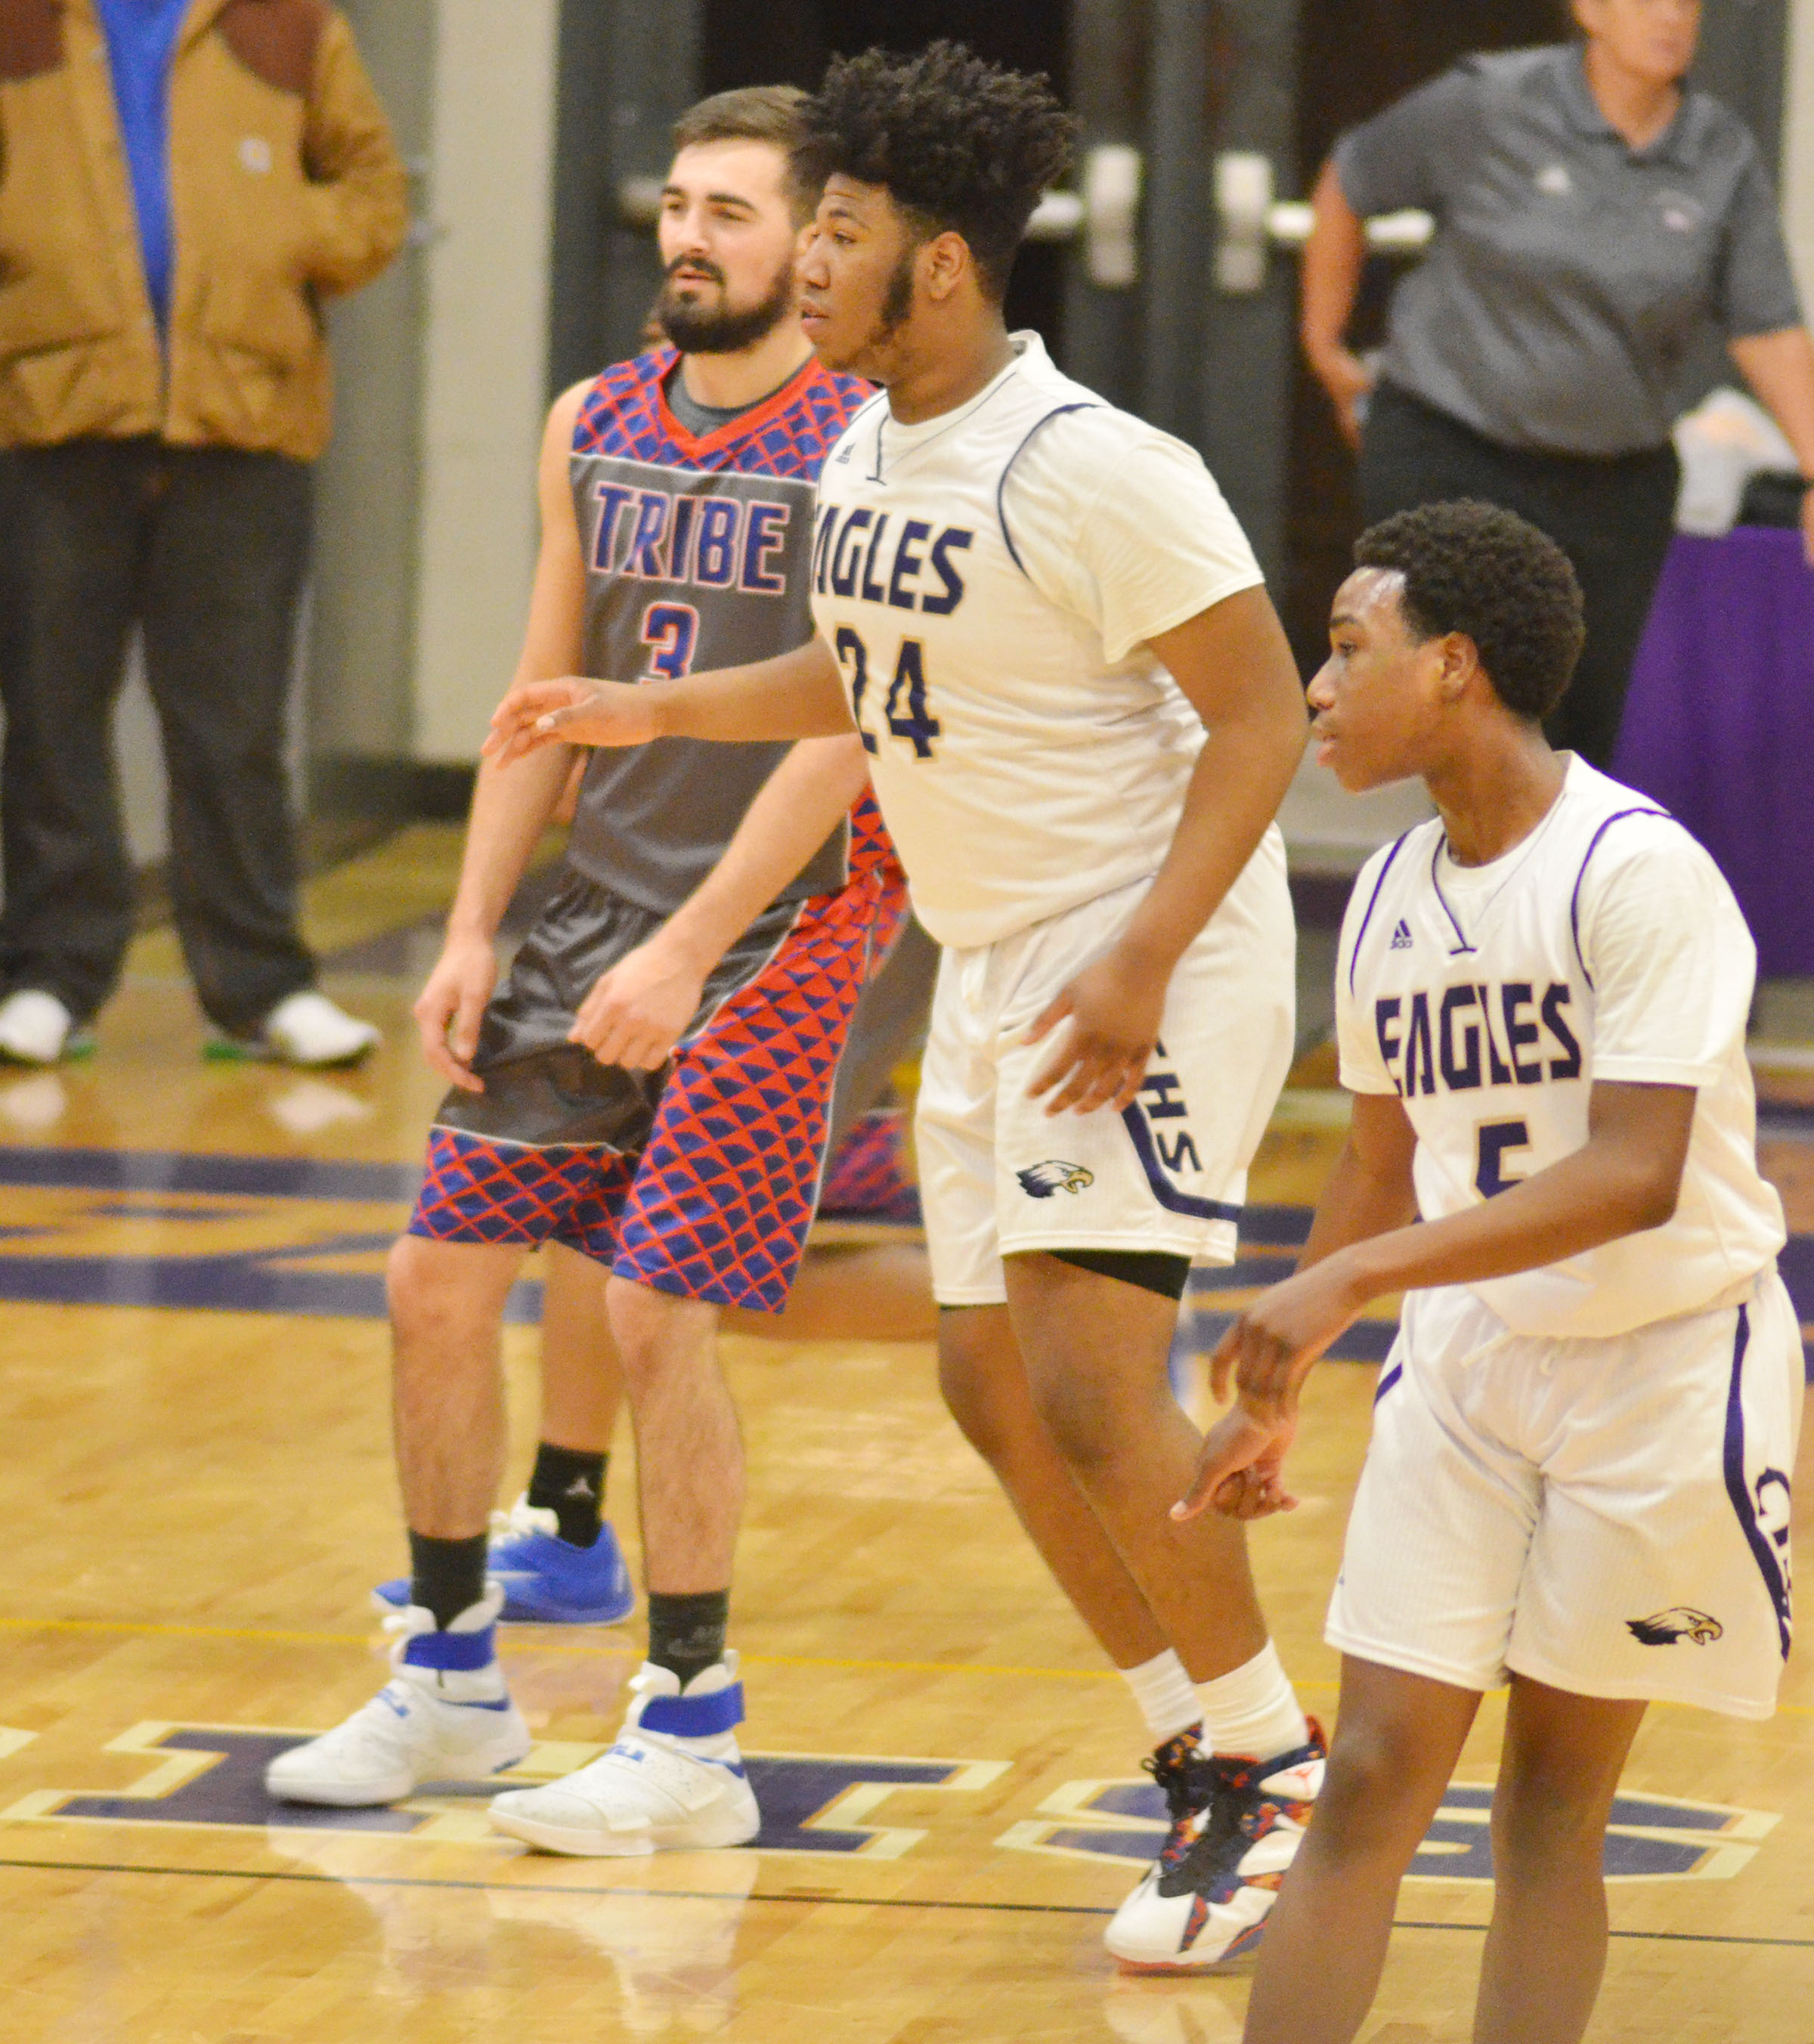 CHS senior Micah Corley, center, and his brother, Malachi, a freshman, play defense.